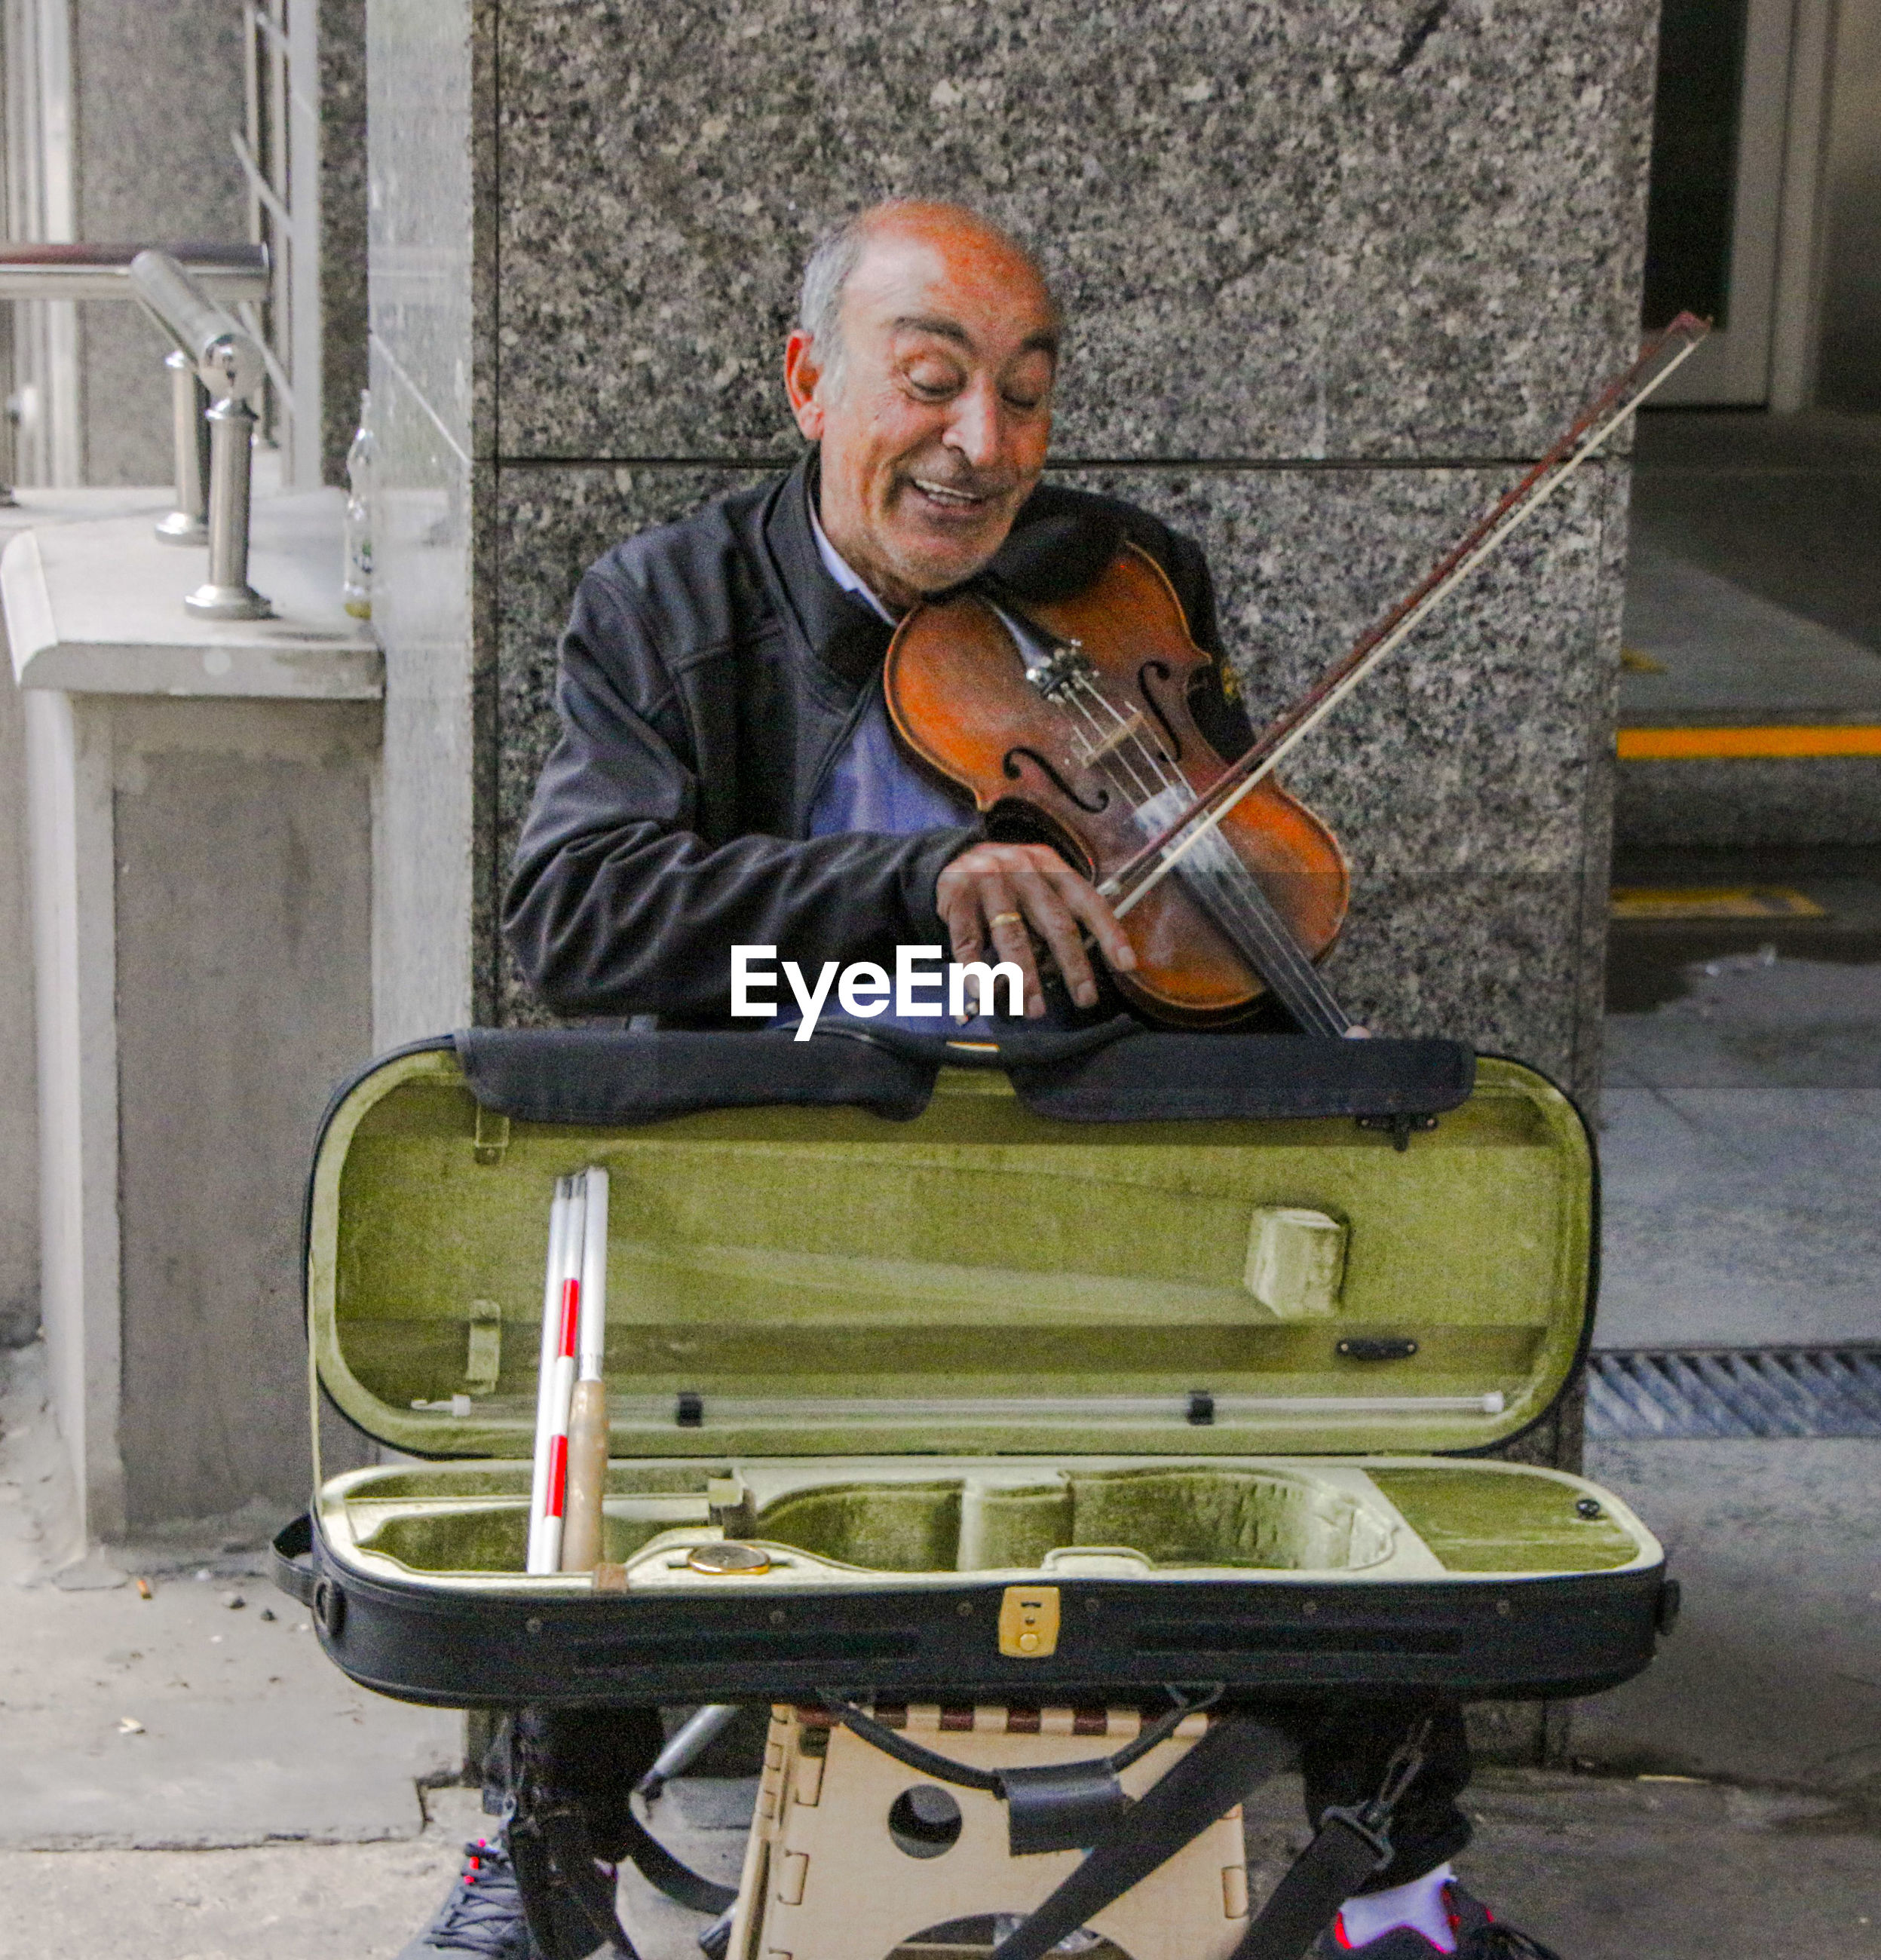 Smiling musician playing violin on street against wall